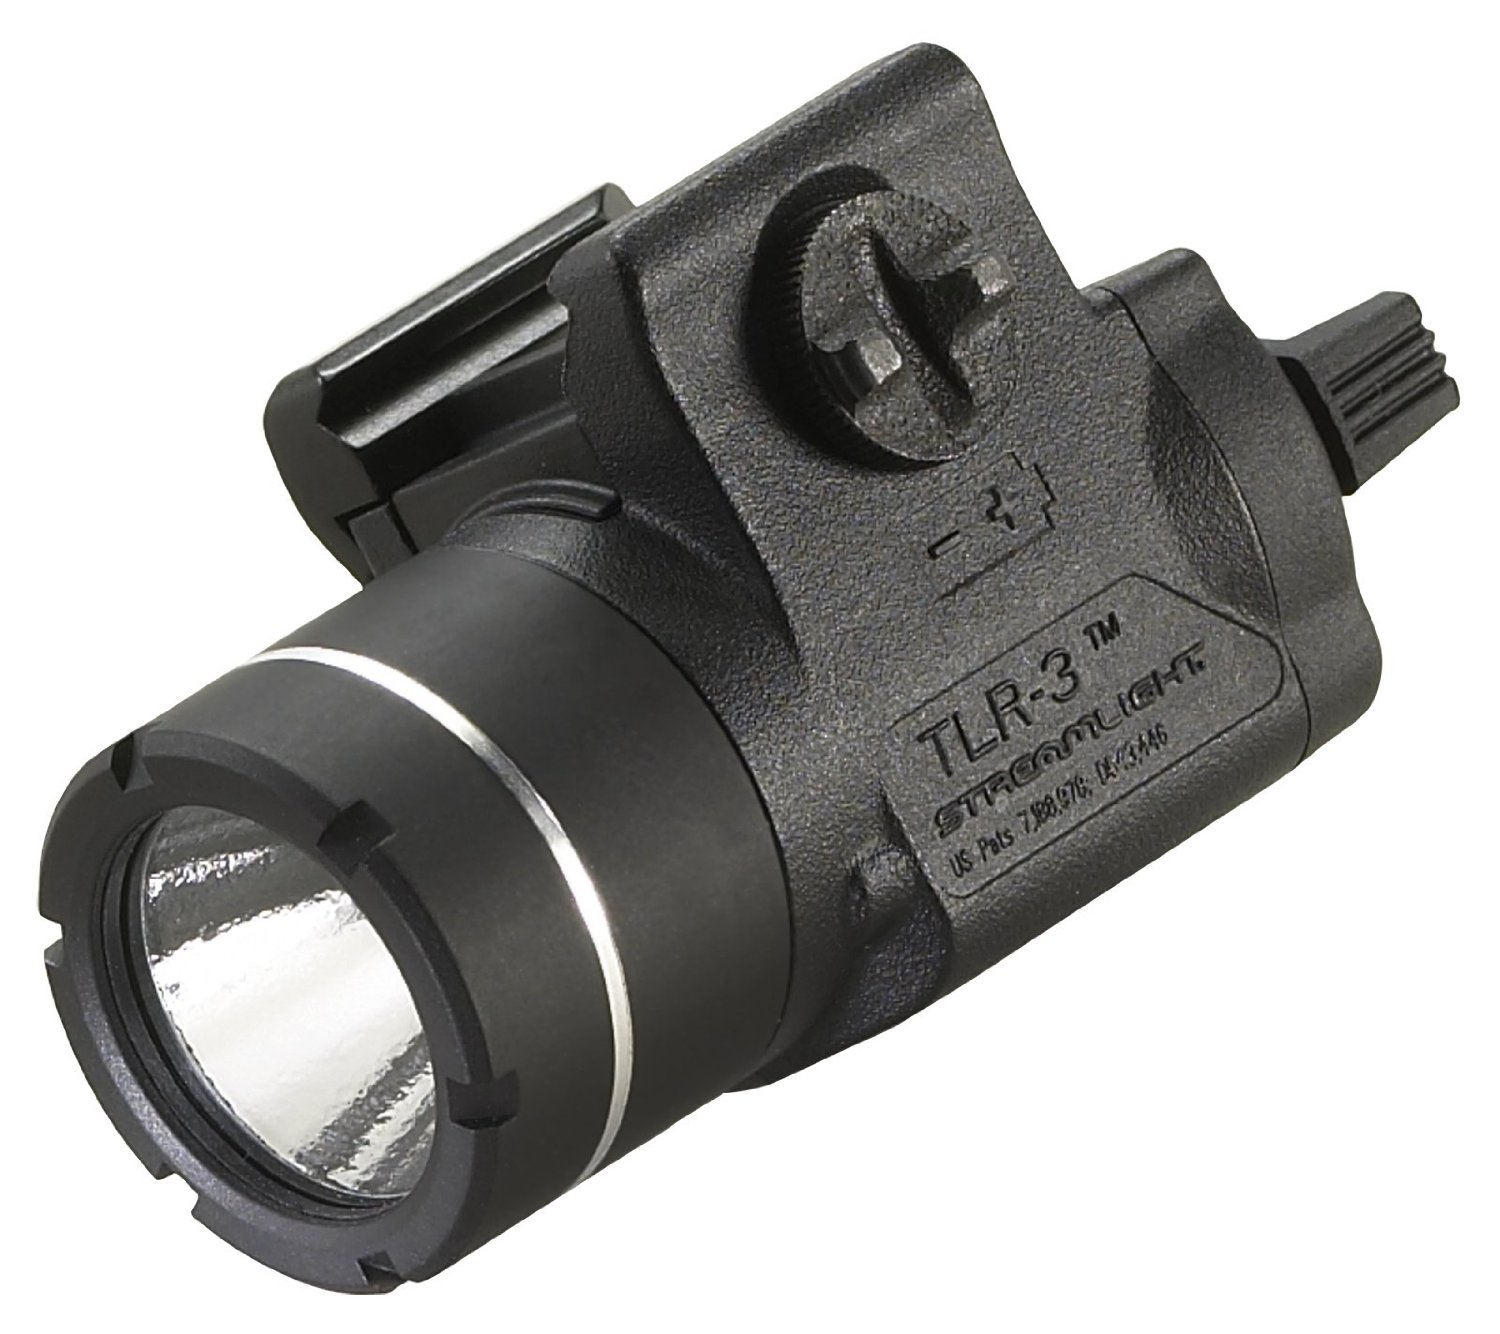 Streamlight Tlr 3 Weapon Mounted Light